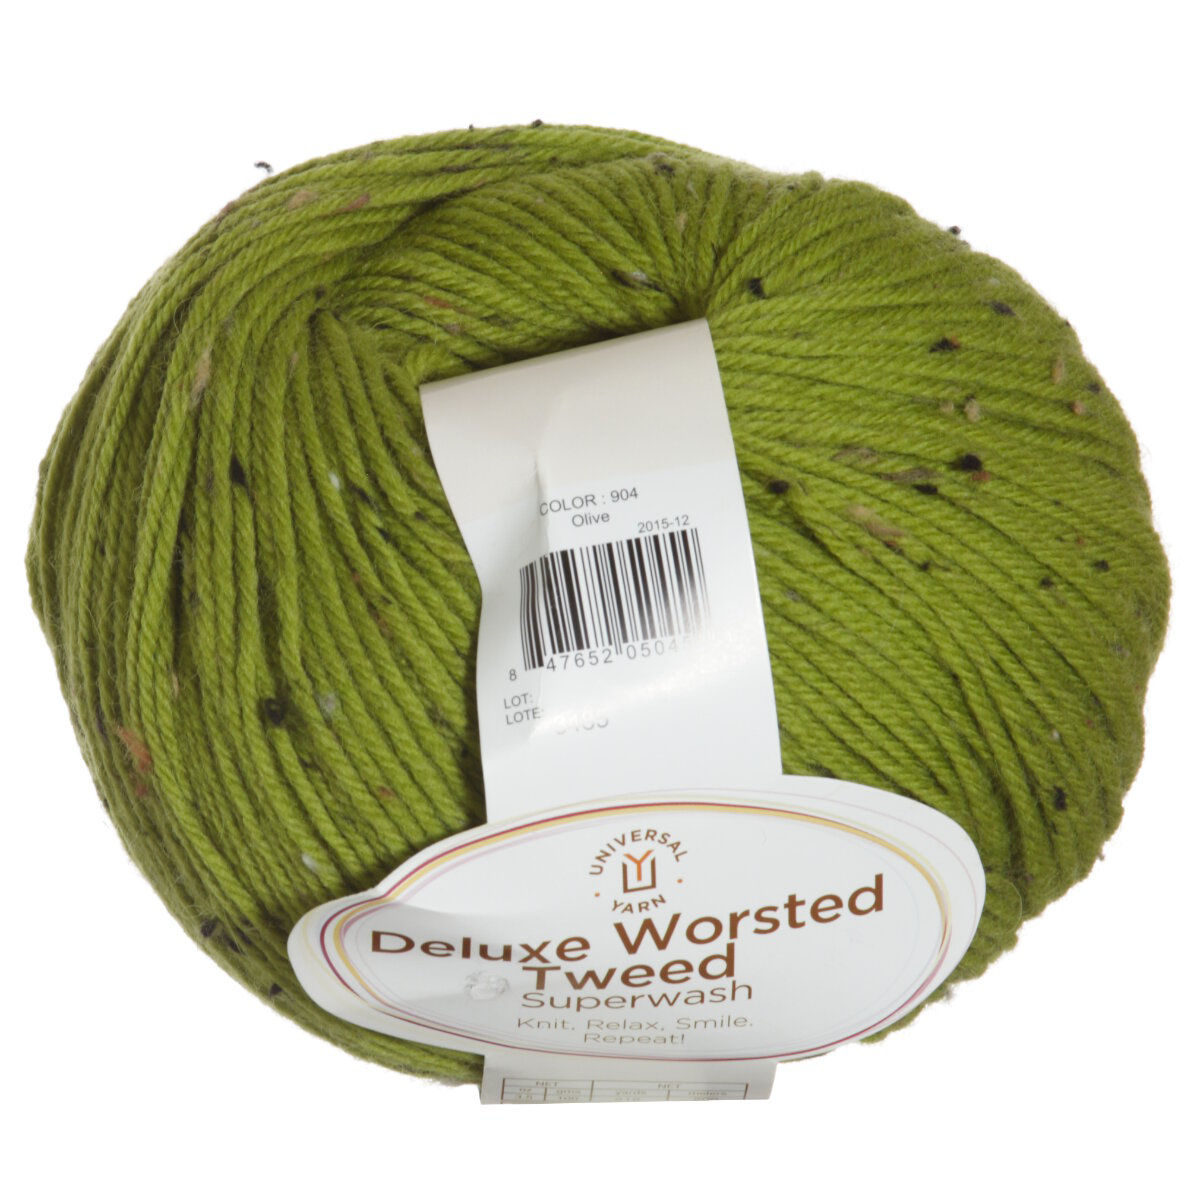 Universal Yarns Deluxe Worsted Tweed Yarn 904 Olive At